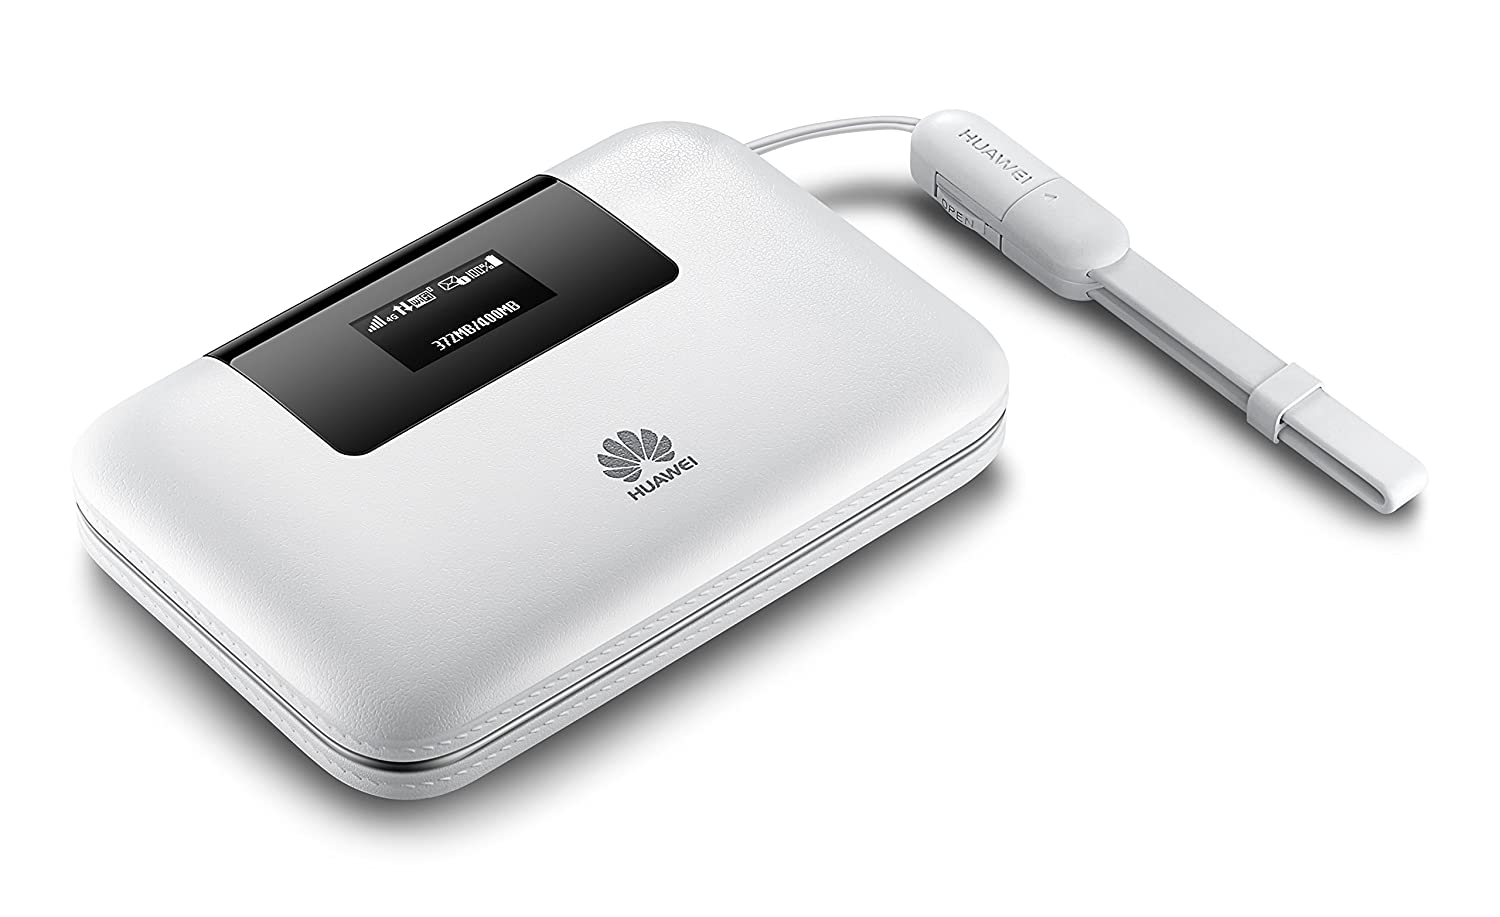 huawei 4g pocket hotspot plus. amazon.com: huawei e5770s-320 4g lte 150 mbps mobile wifi pro (20 hours working, power bank feature,hotspot ethernet port) (white): cell phones \u0026 4g pocket hotspot plus